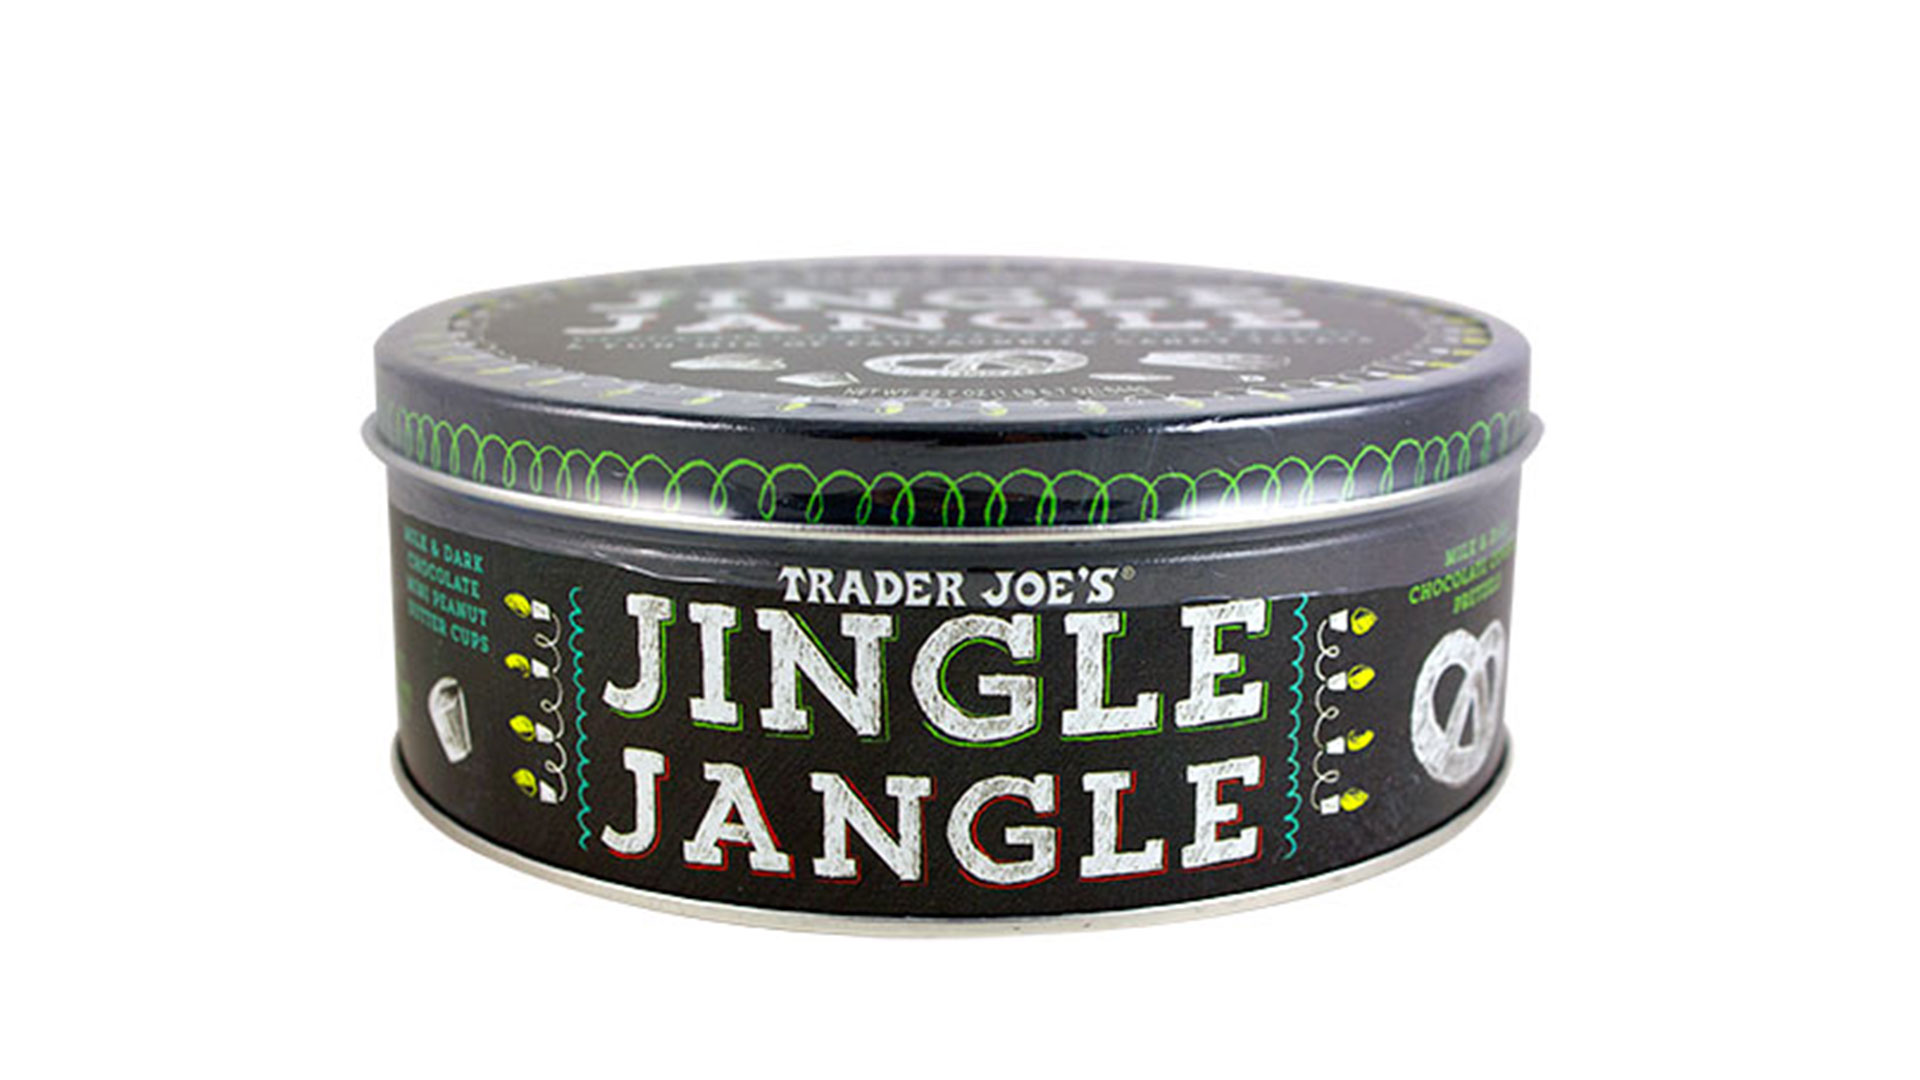 RX_1712_Jingle Jangle_Trader Joe's Stocking Stuffers